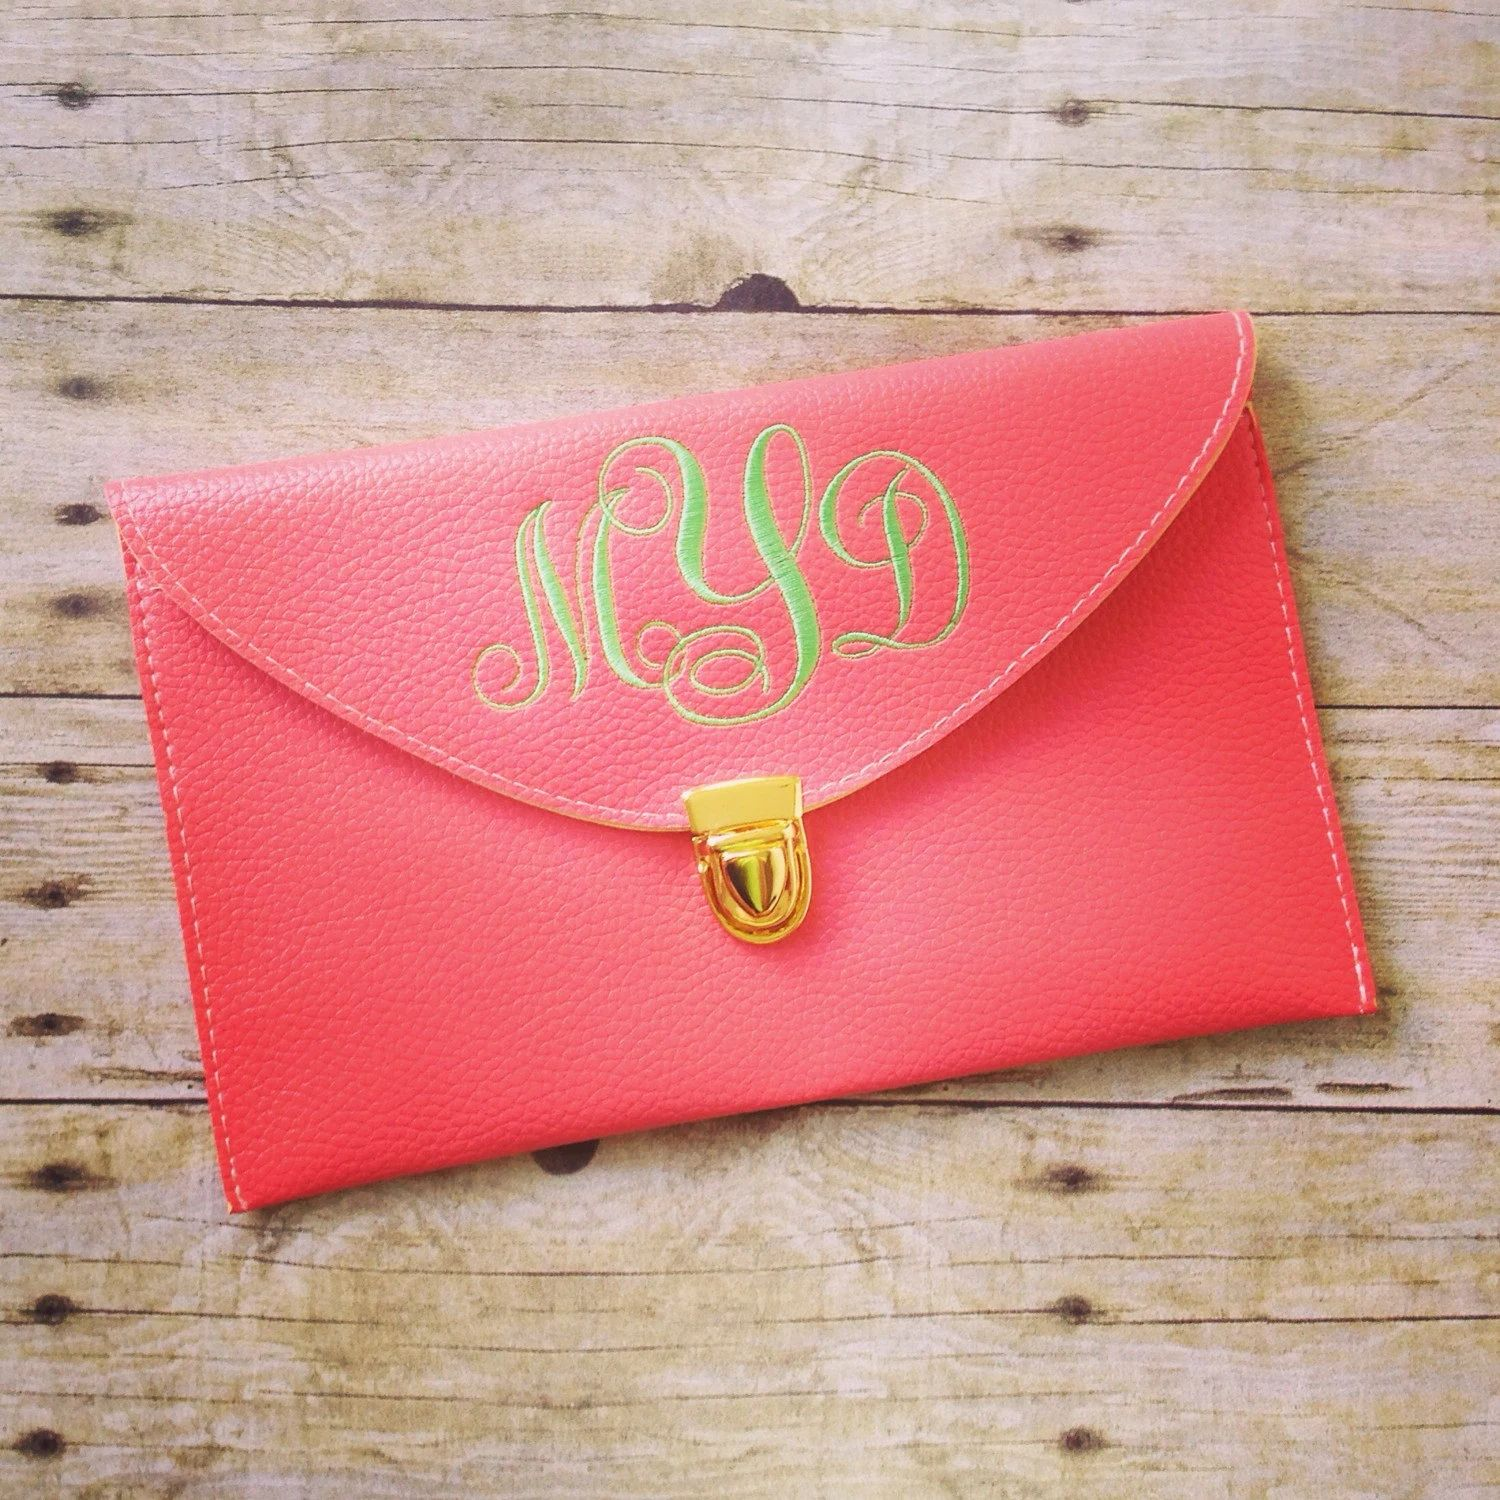 monogrammed leather clutch purse